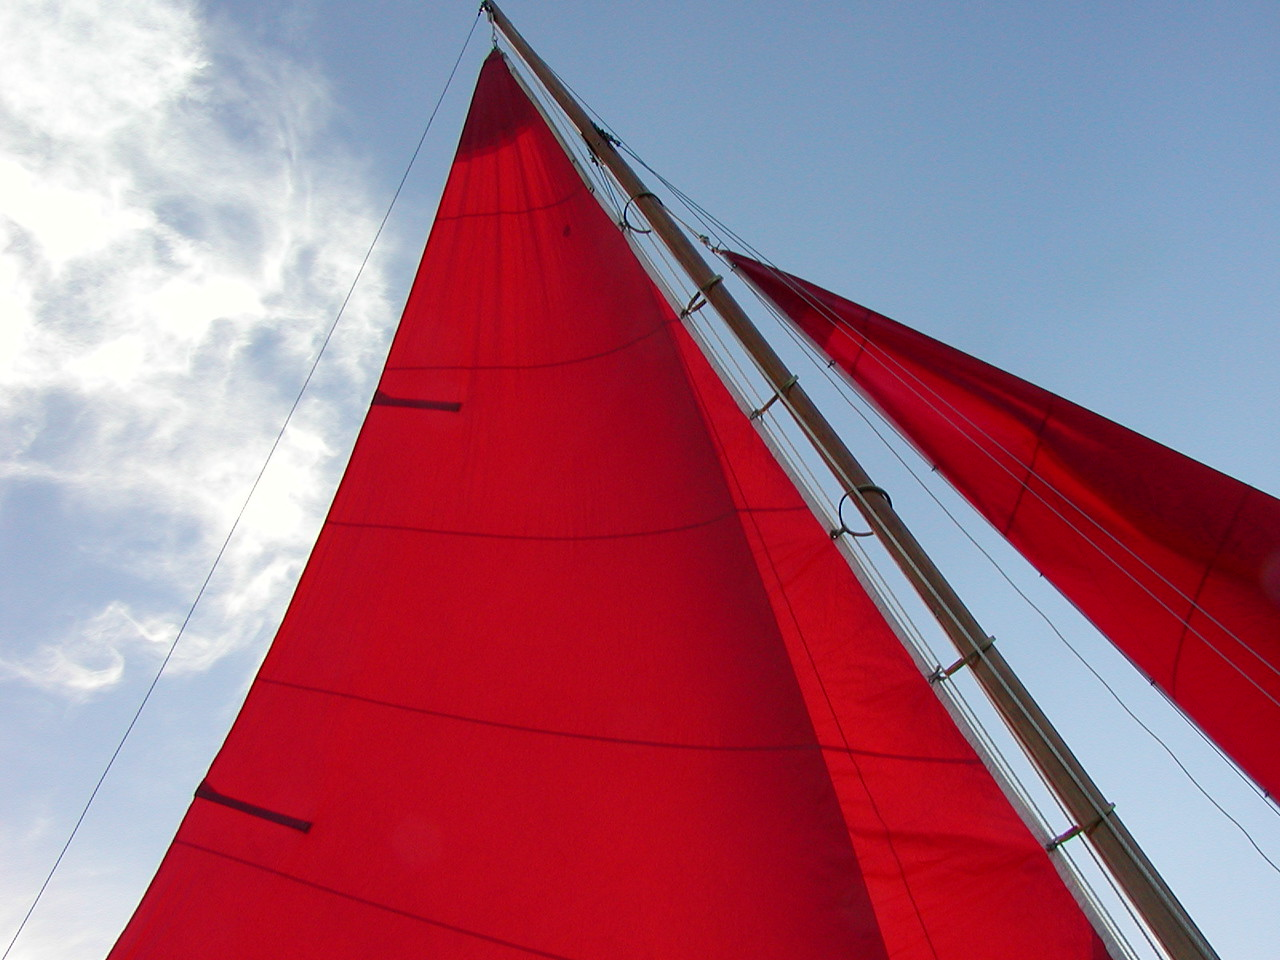 Lynn, with the help of wife, Linda, sewed his own sails.  Why red?  It was on sale, of course. The mainsail is tied to wooden hoops that slide easily up and down the wooden mast, a technique common on older wooden boats.